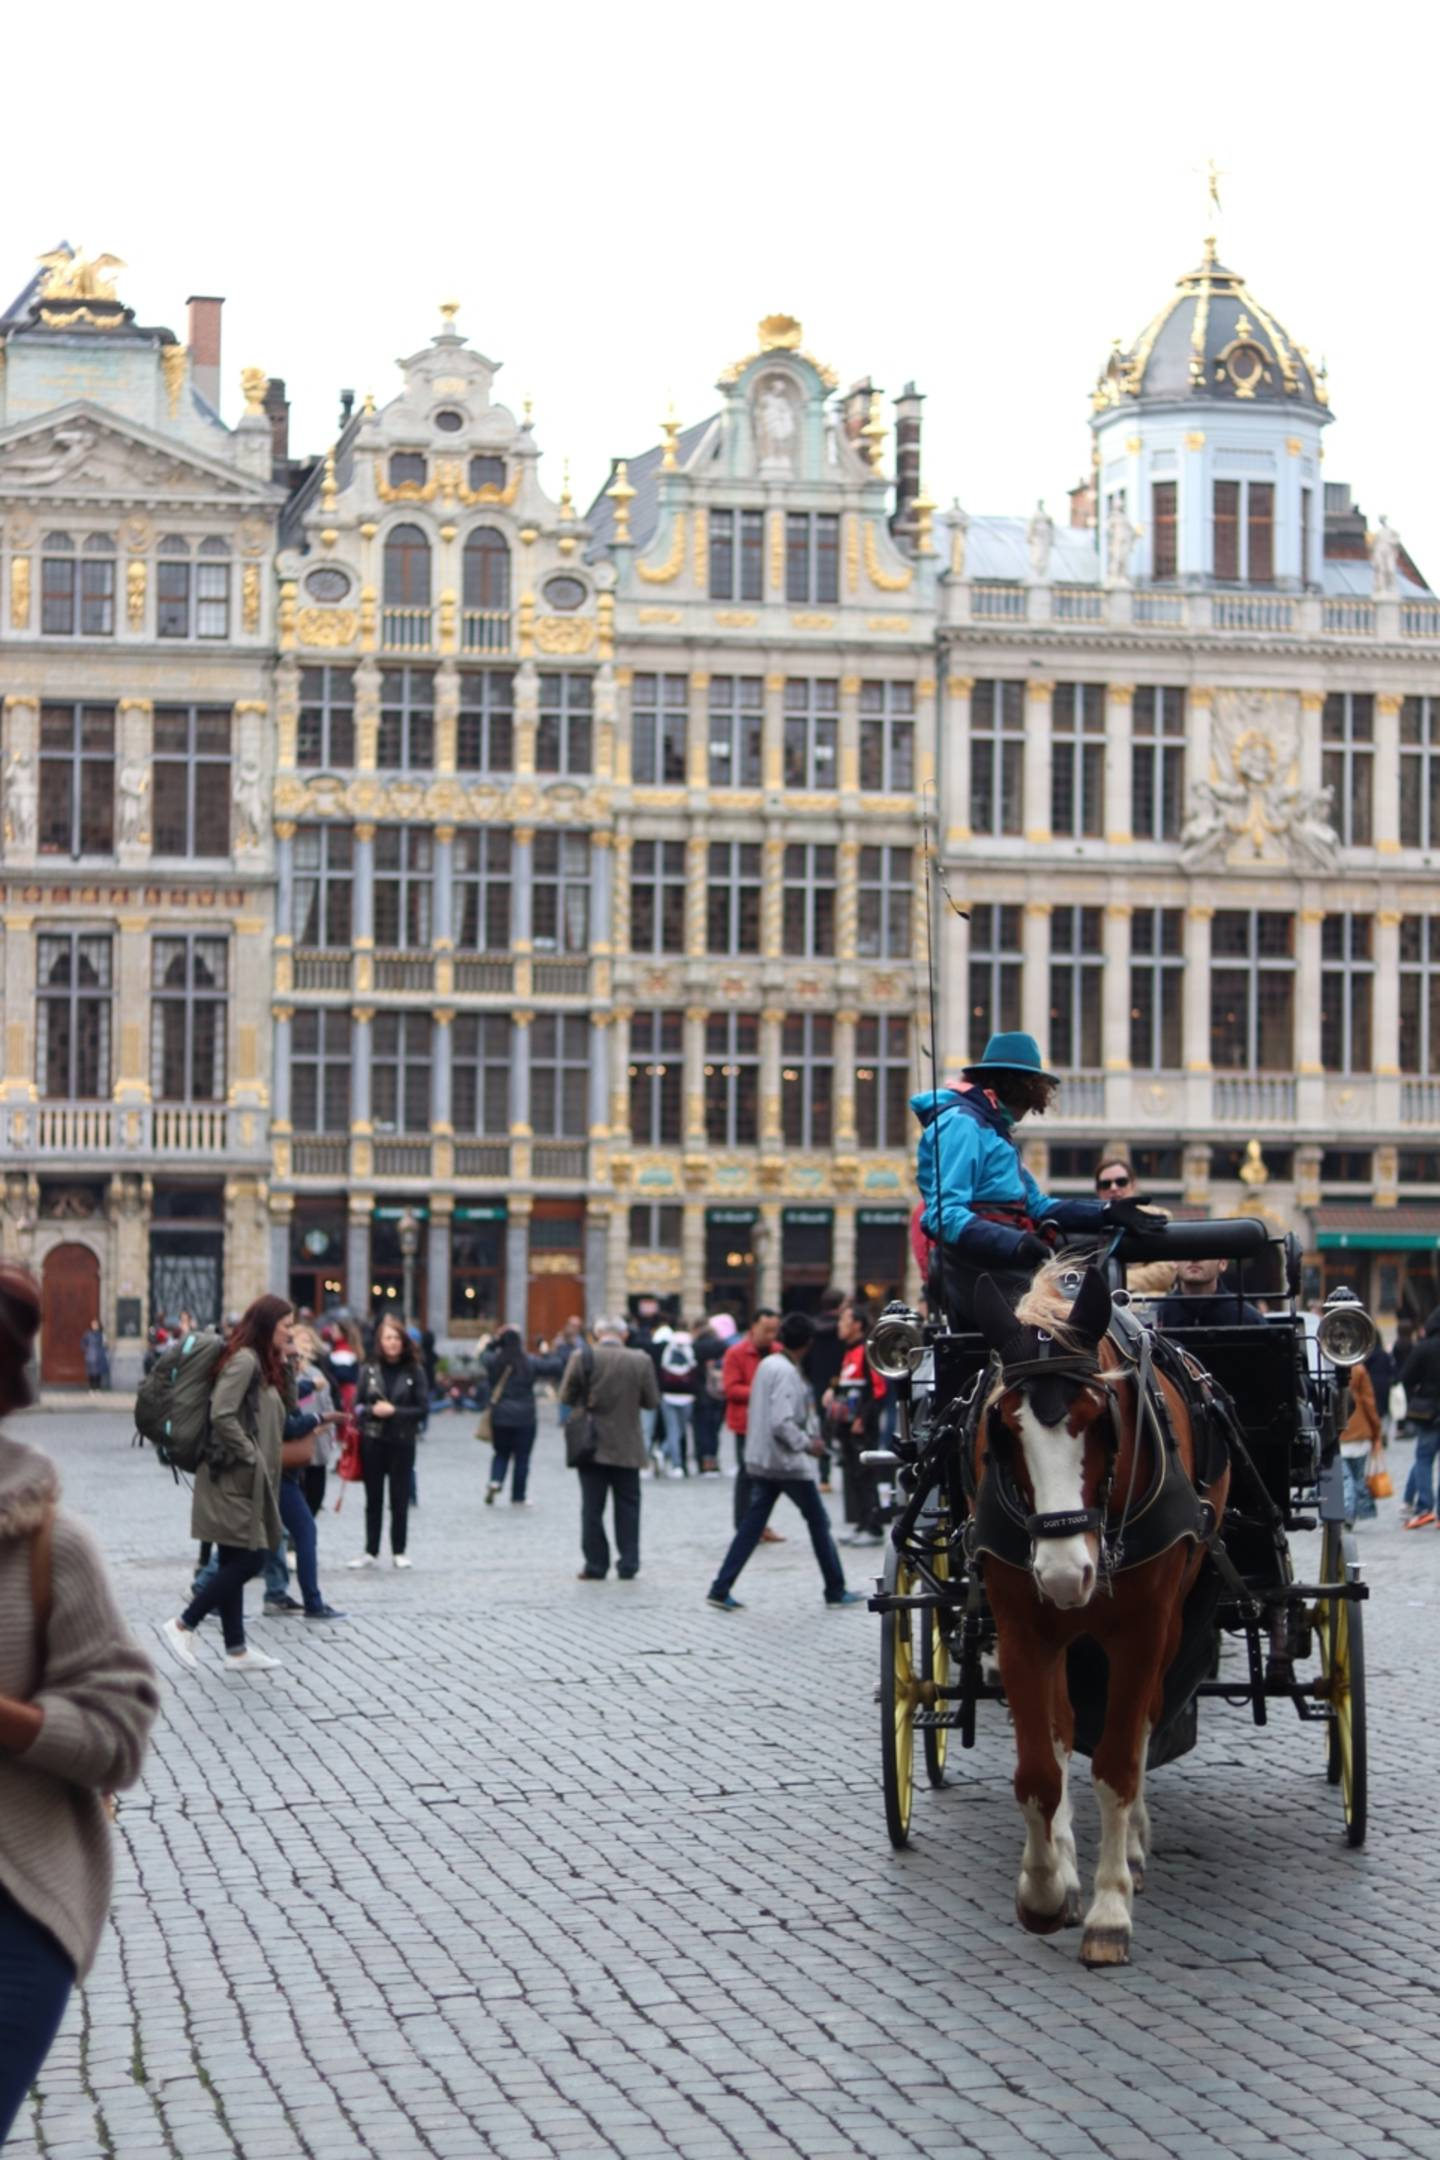 Horse-drawn carriage on the grande place (Grote Markt)